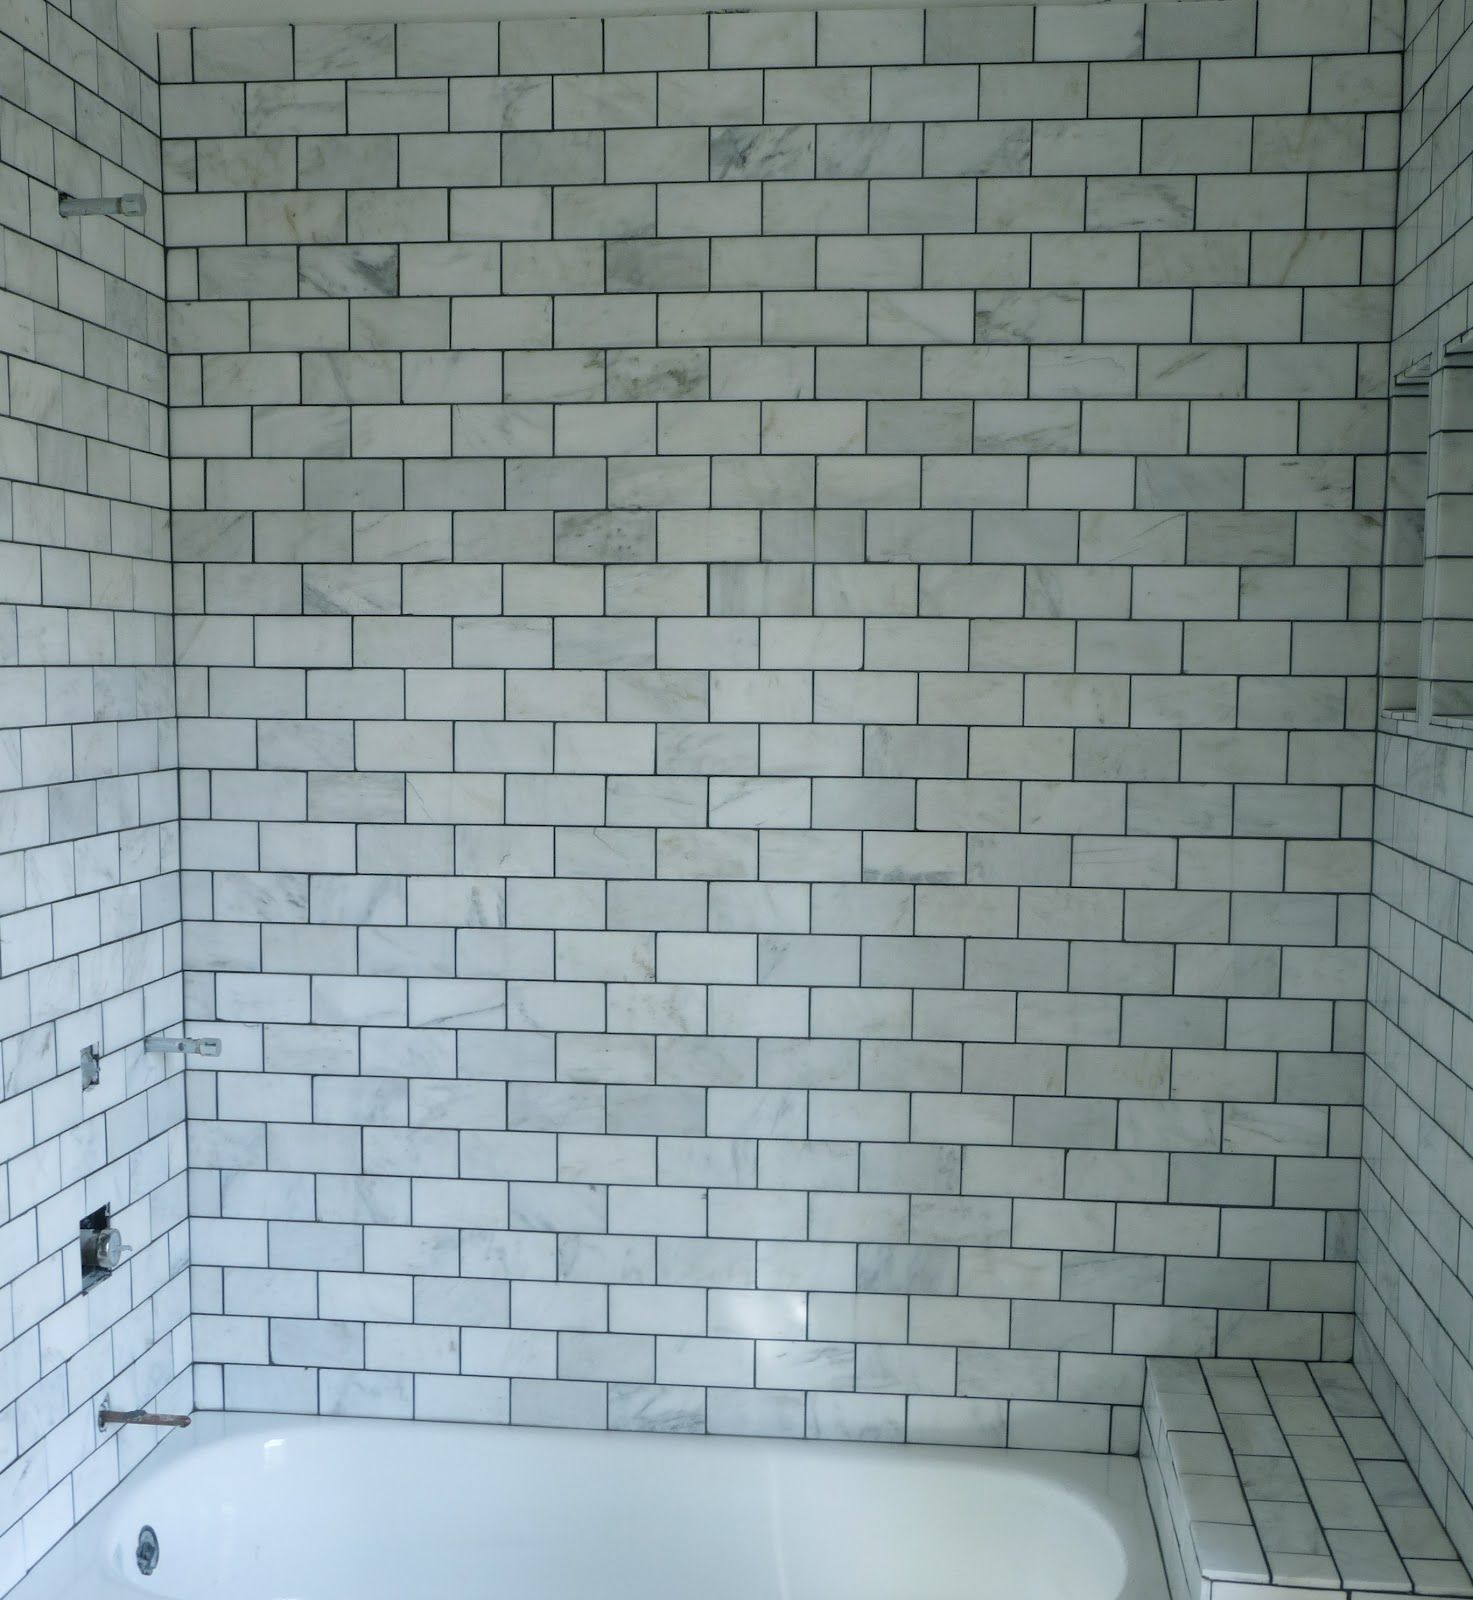 Marble tile black grout bungalow home black white - White subway tile with black grout bathroom ...